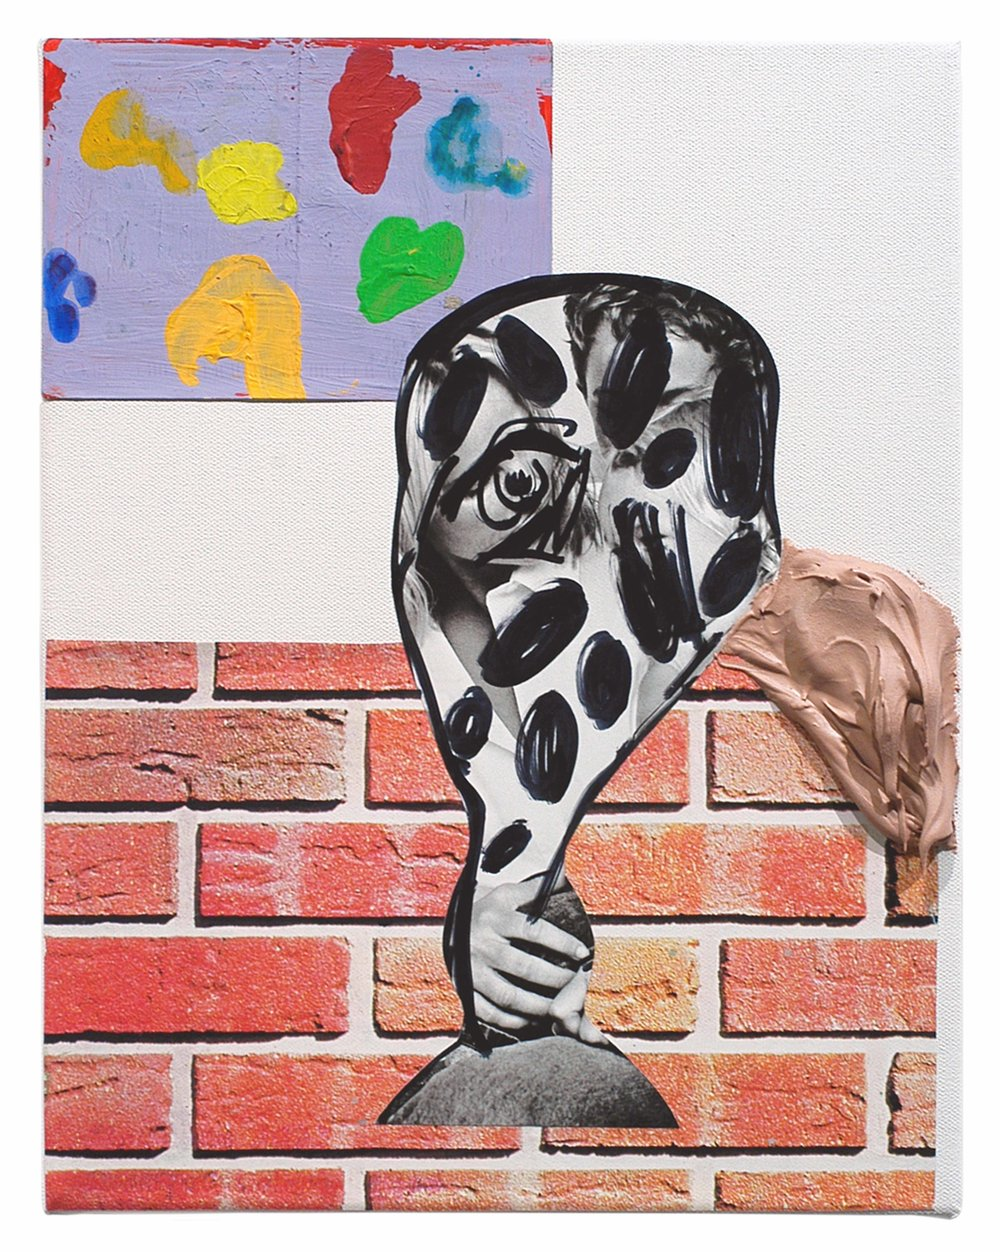 Drew Beattie  Problem About a Child   2005 acrylic, permanent marker, collage, paper and bondo on canvas  11 x 14 inches